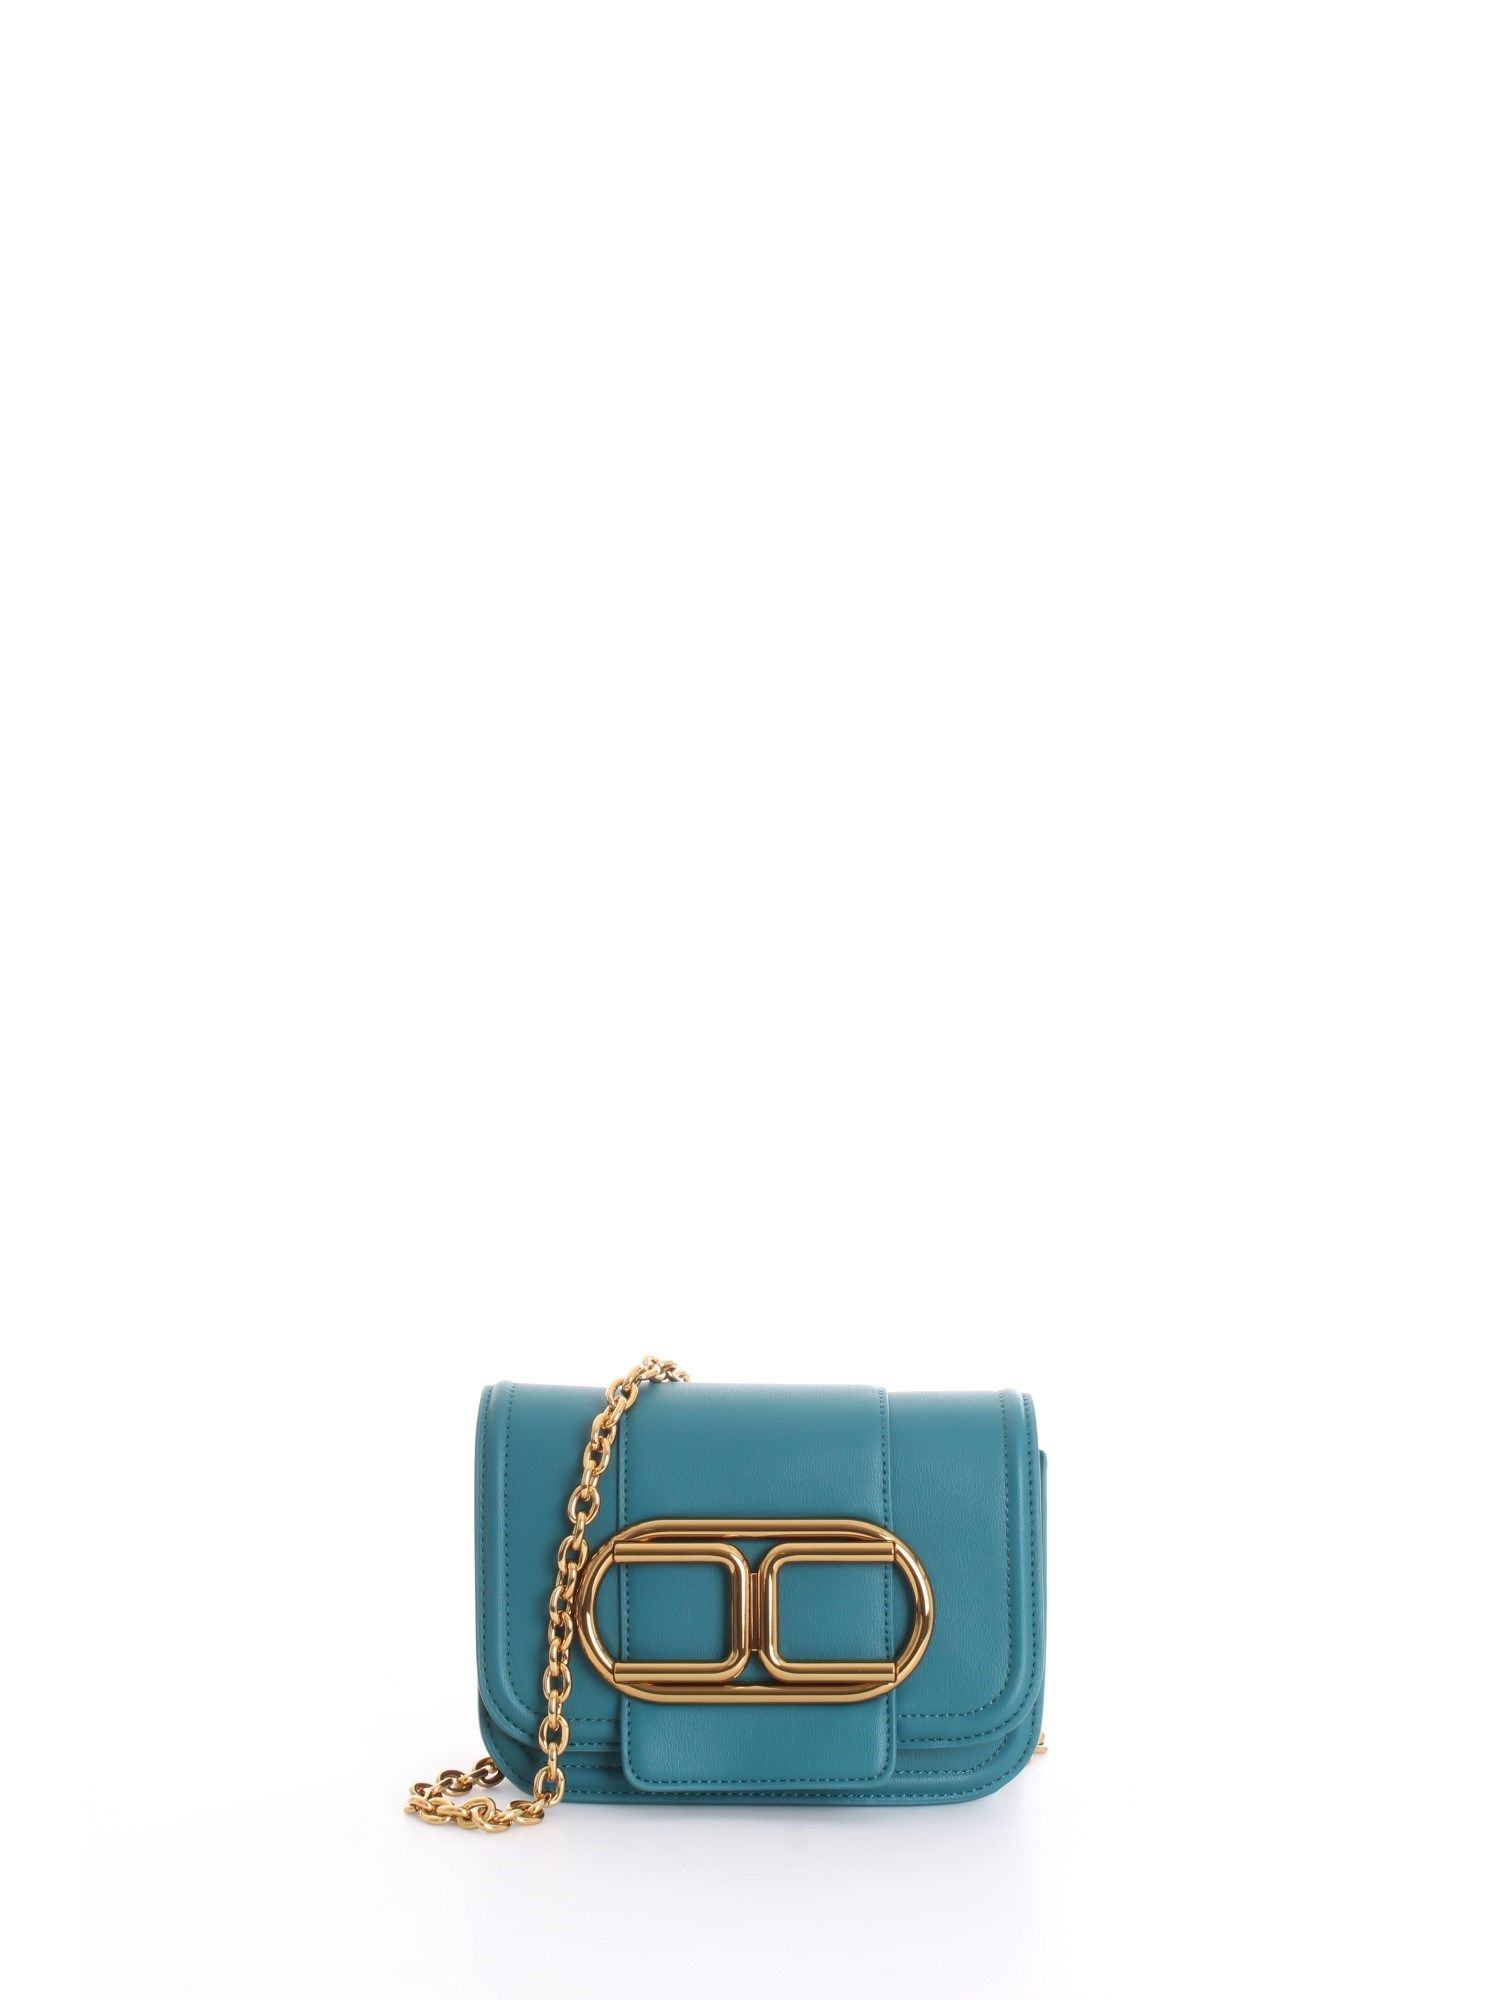 Elisabetta Franchi ELISABETTA FRANCHI WOMEN'S BLUE SHOULDER BAG